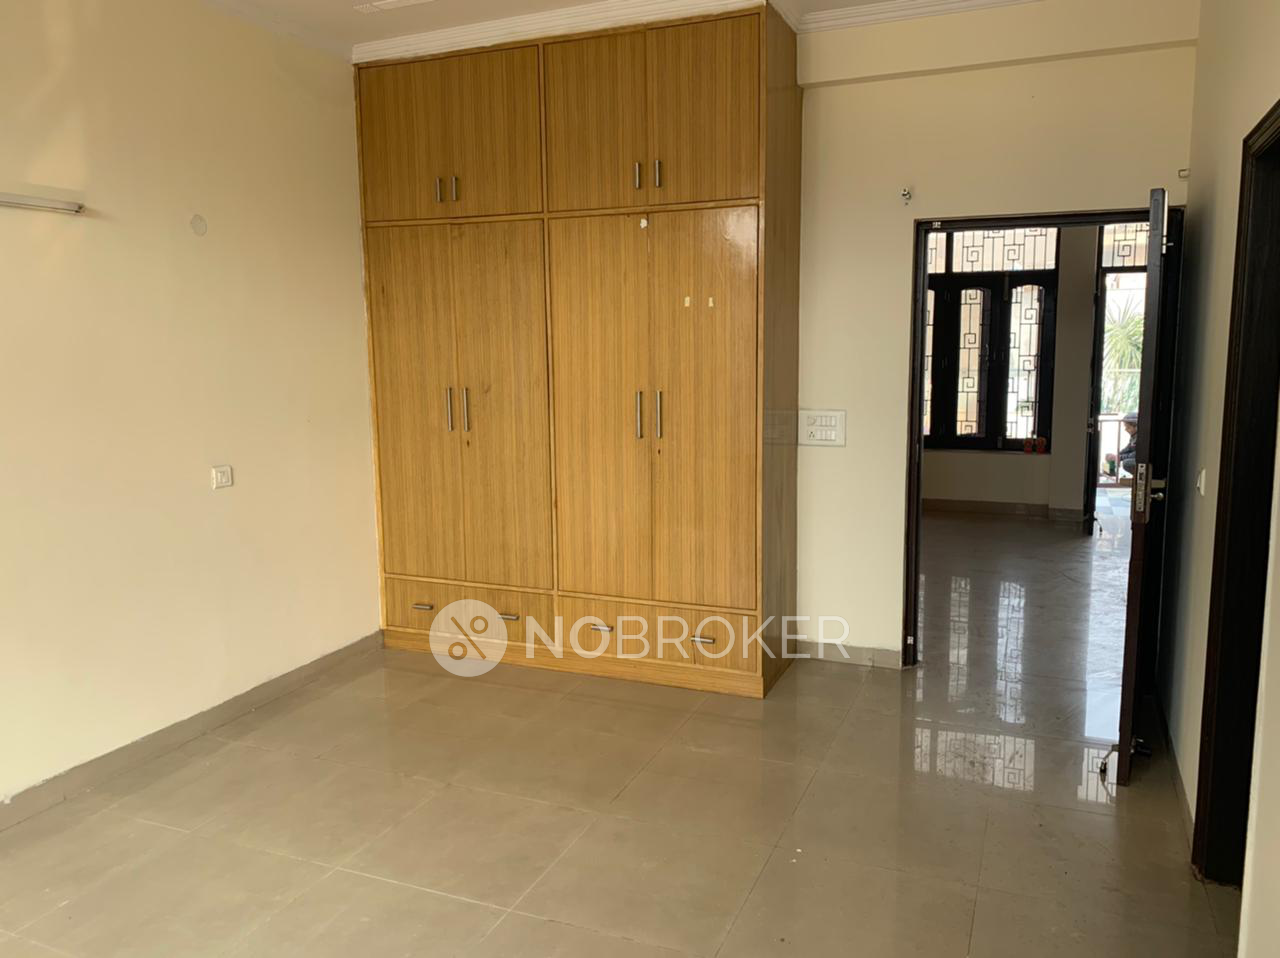 2BHK Flat for rent in Sector 40, Gurgaon